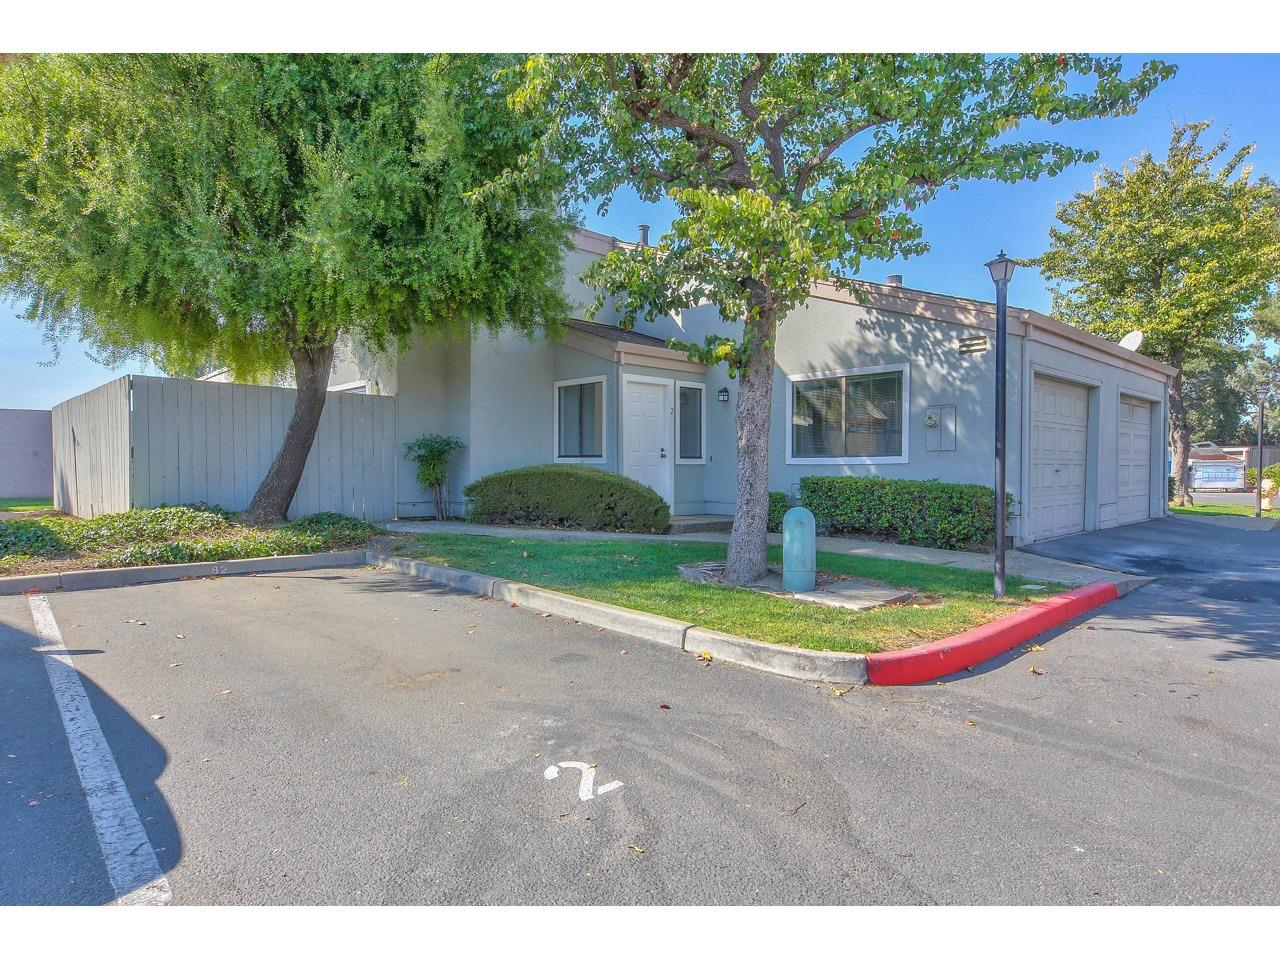 Detail Gallery Image 1 of 7 For 1021 Polk St #2, Salinas, CA, 93906 - 2 Beds | 1 Baths